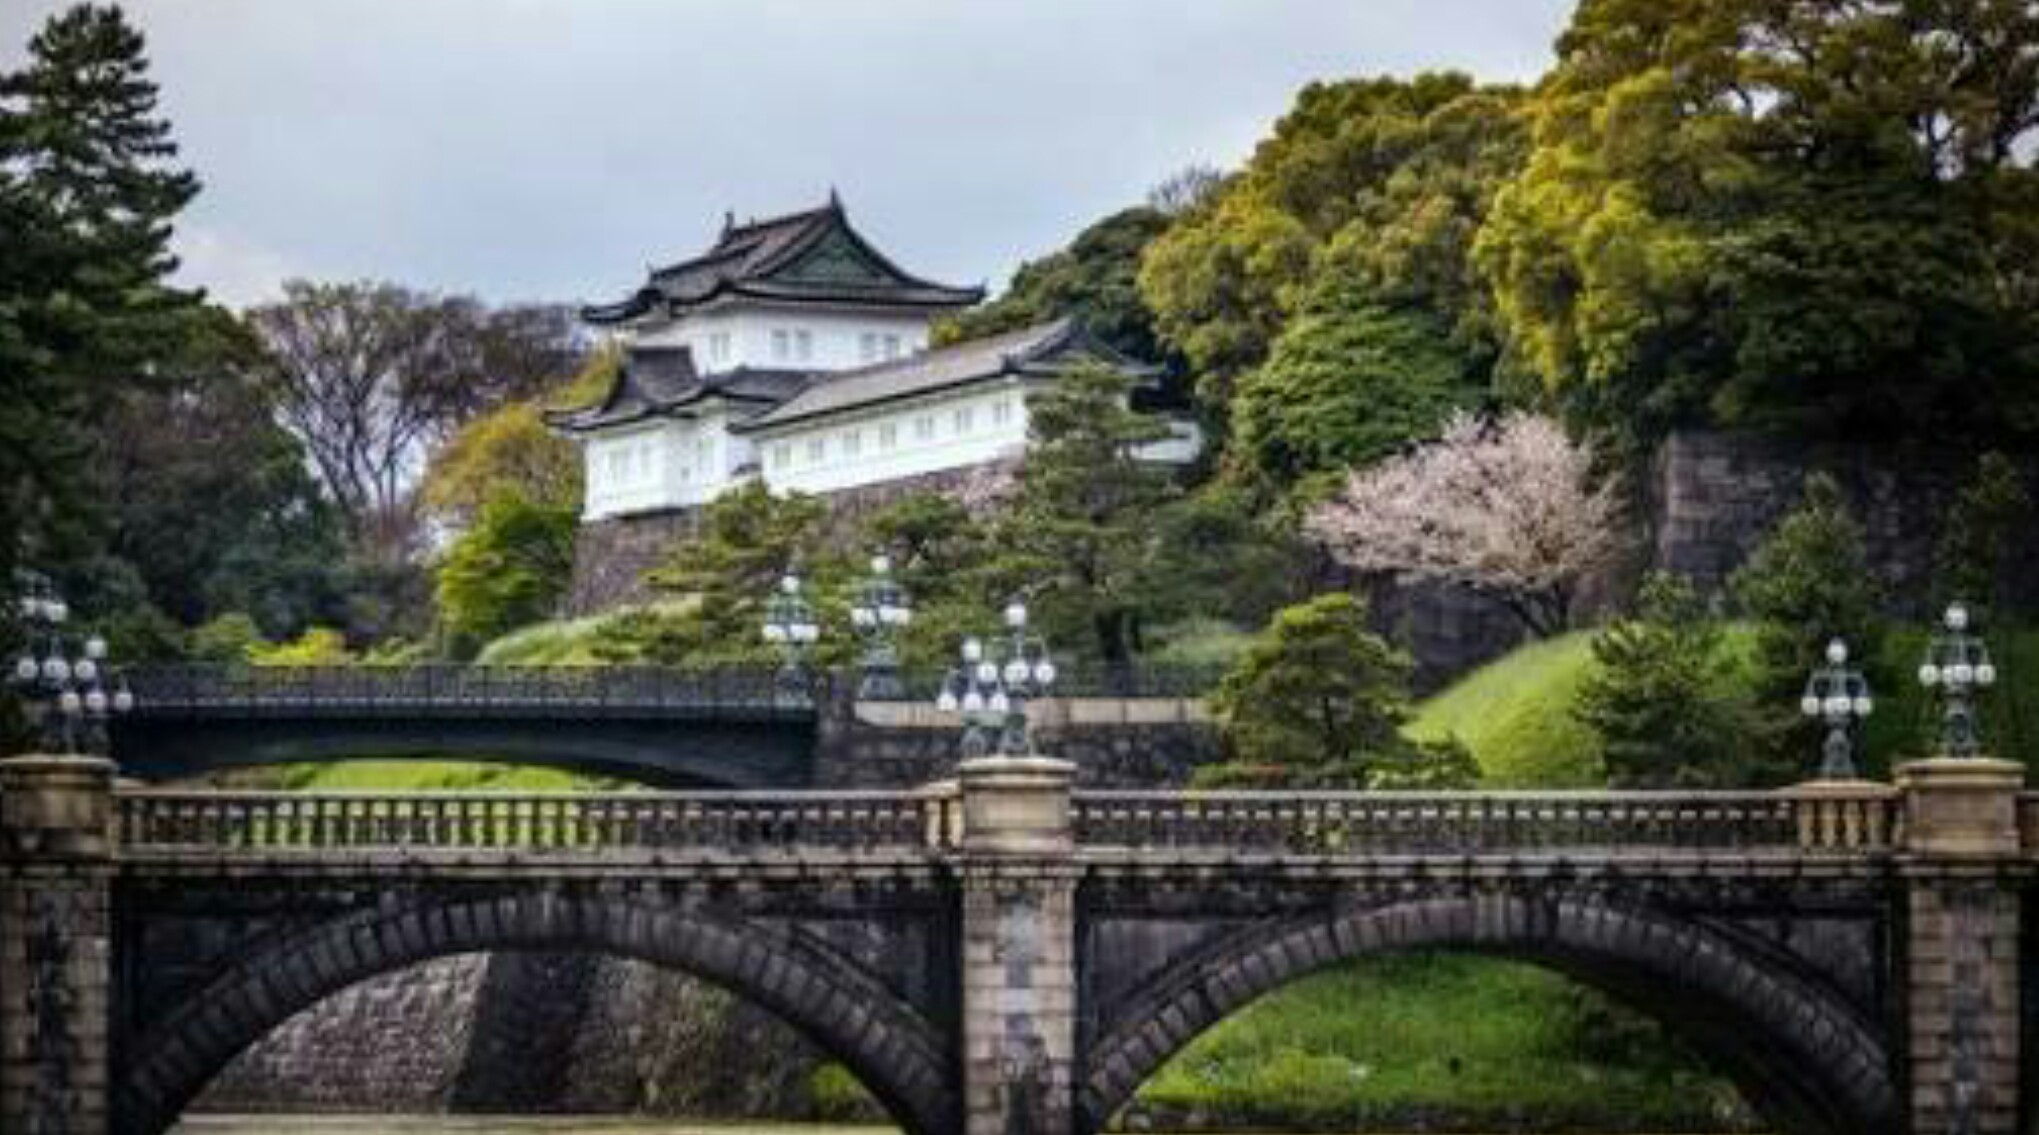 Bridge to the main gate of the Imperial Palace